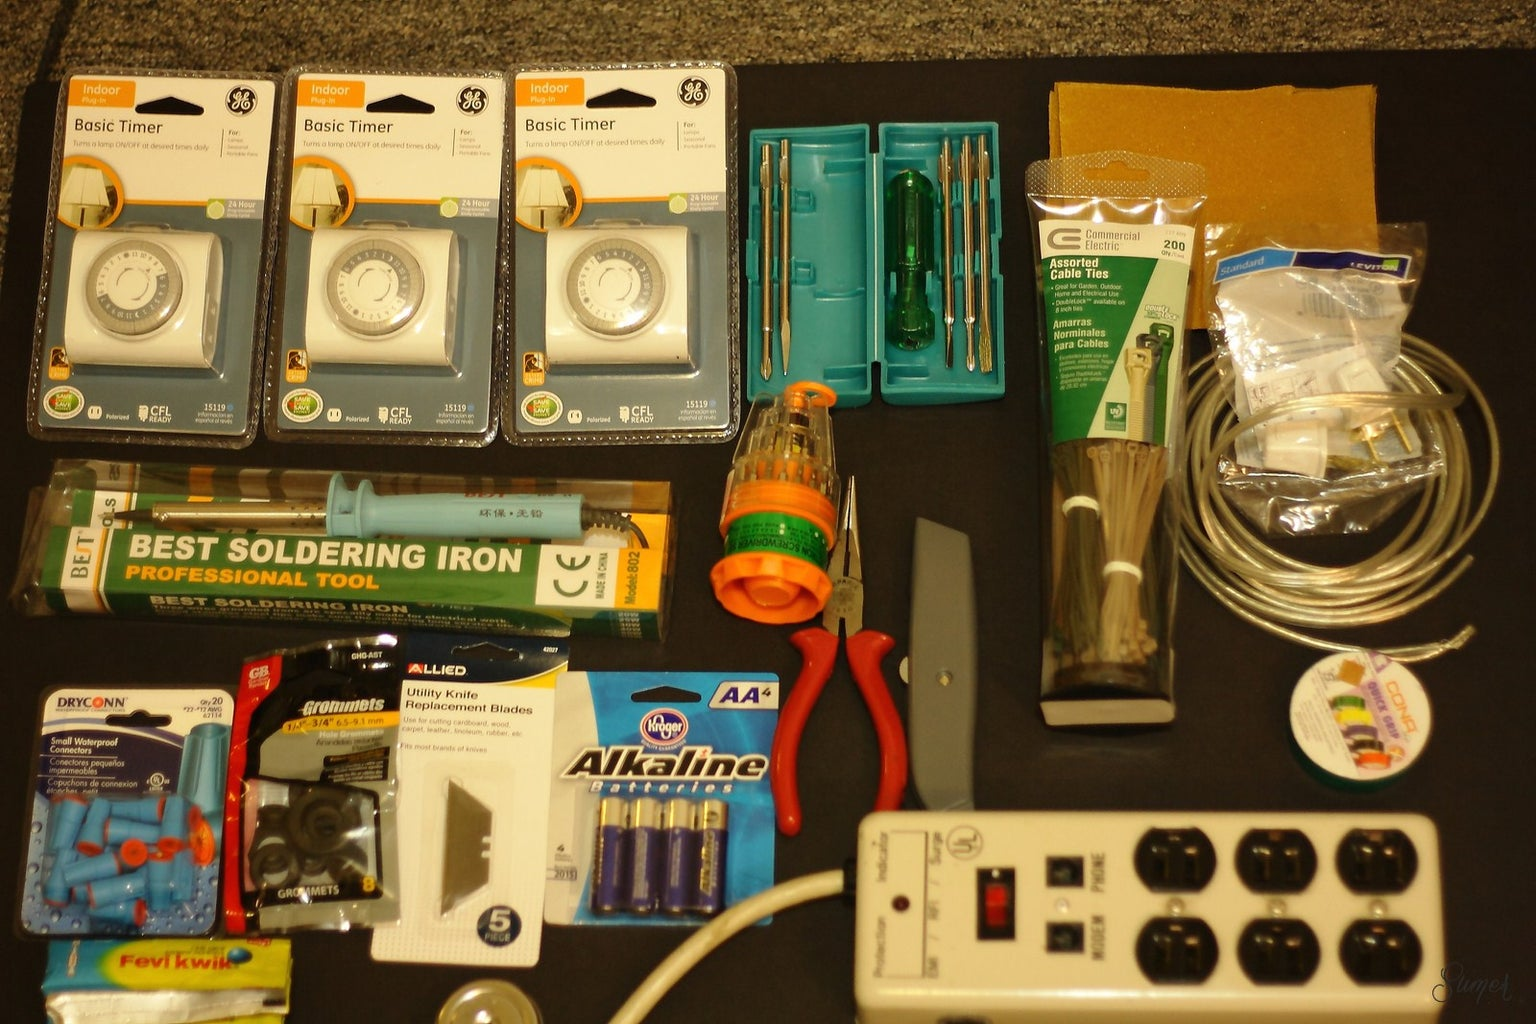 A Complete Idiot's Guide to Make LED Light Unit for Planted Aquarium